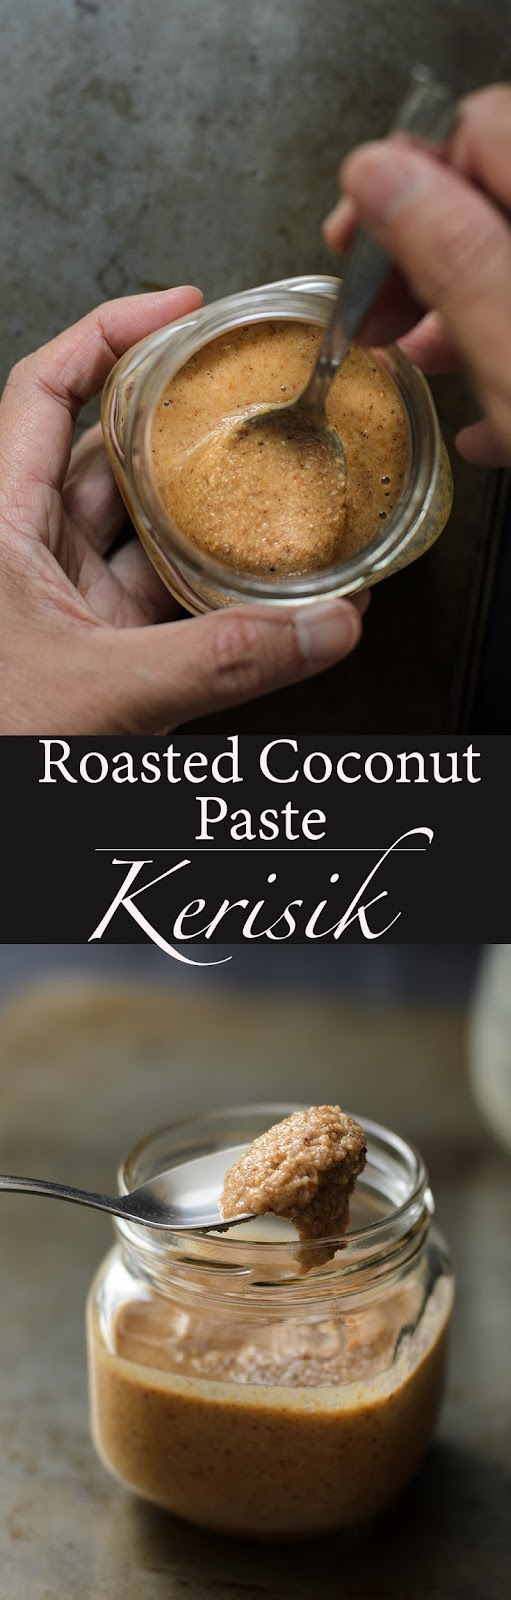 A short video on how to make roasted coconut paste known as kerisik in Malay, using microwave oven. Roasted coconut paste or Kerisik is widely used in Malaysian cooking.  Roasted coconut paste gives a nutty creamy taste to any dishes.